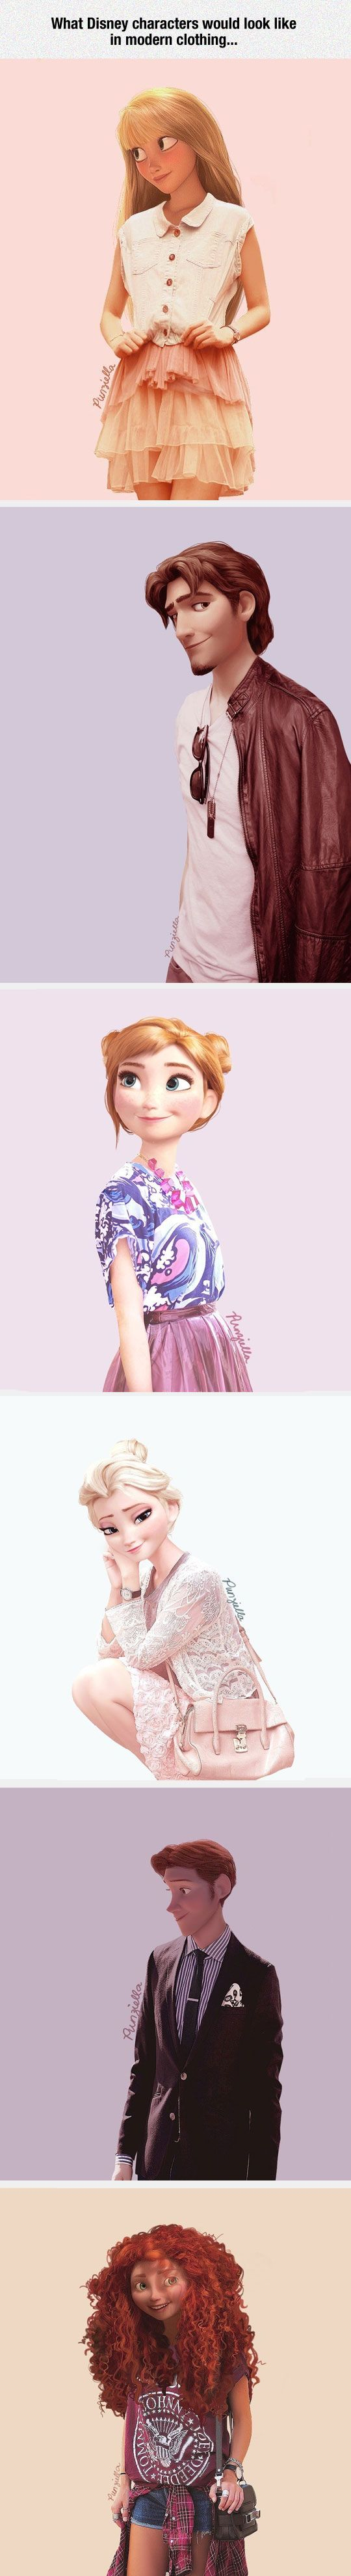 If Disney characters wore modern clothing -